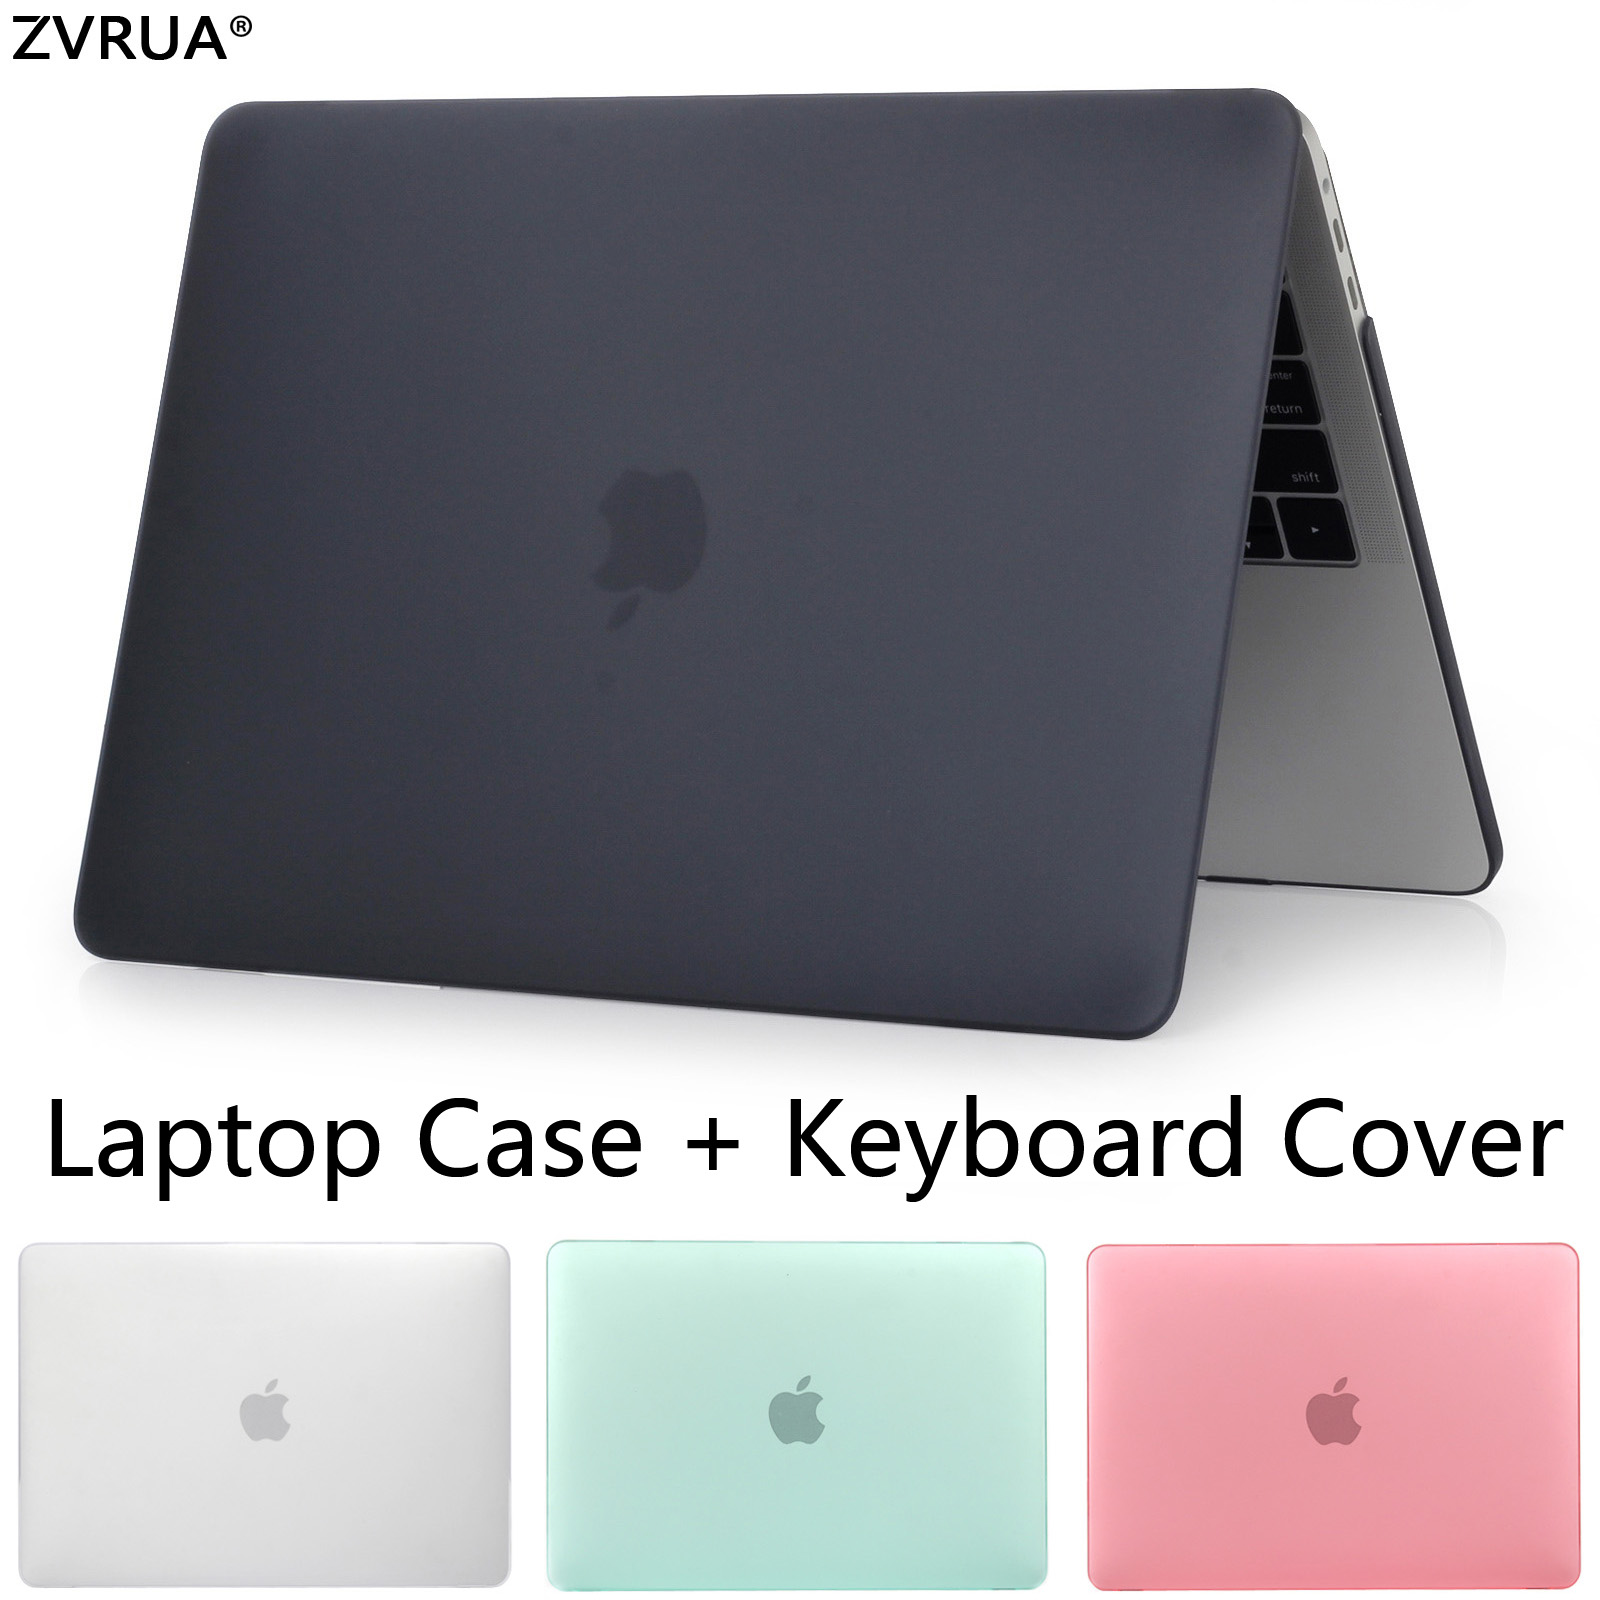 ZVRUA HOT Sell laptop Case For Apple macbook Air Pro Retina 11 12 13 15 For Mac book 13.3 inch with Touch Bar +Keyboard Cover